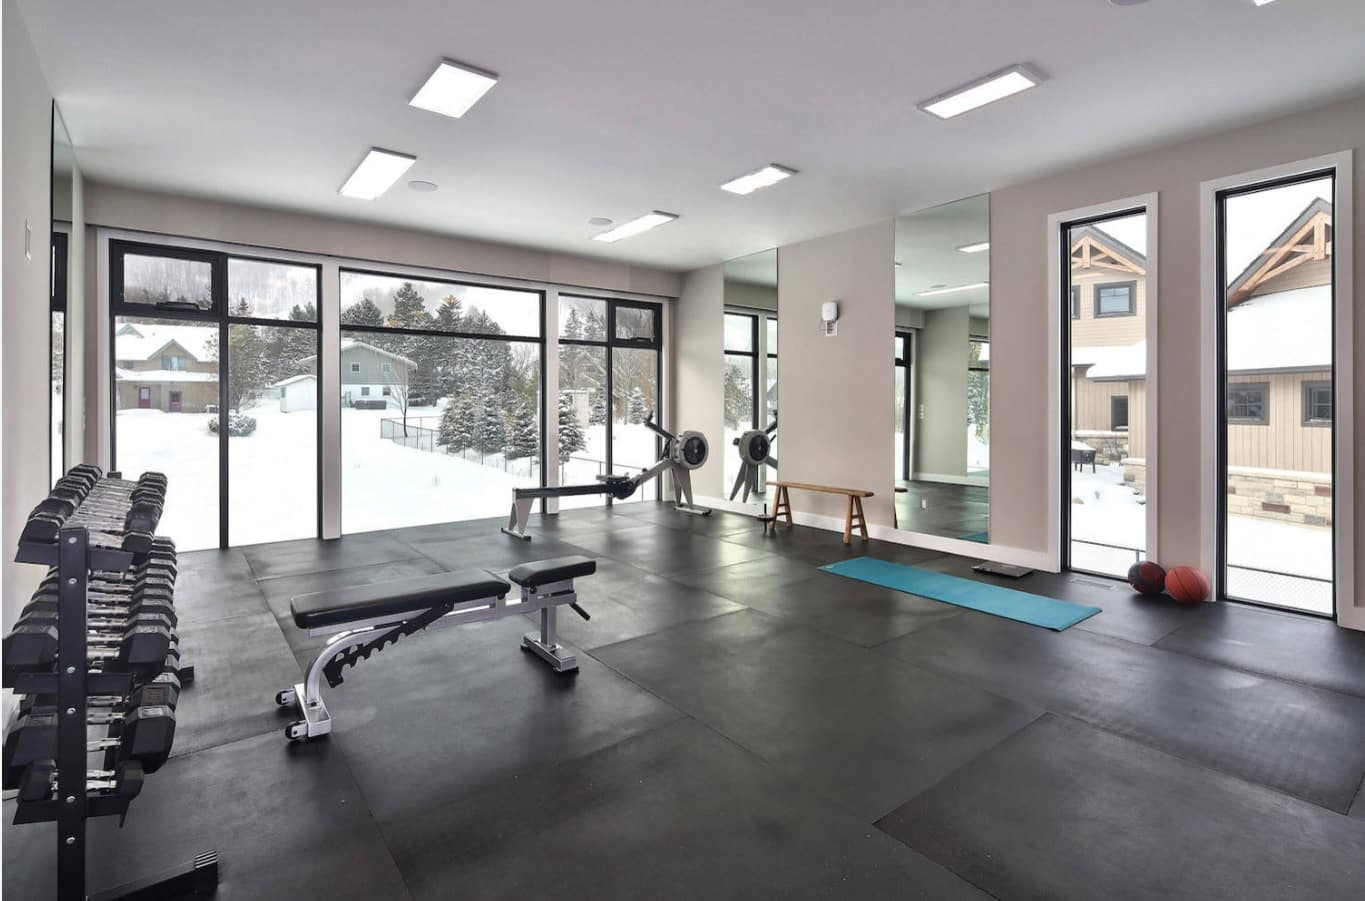 How to Build a Cheap and Effective Home Gym. Large hall of the mountain house with couple of weight benches